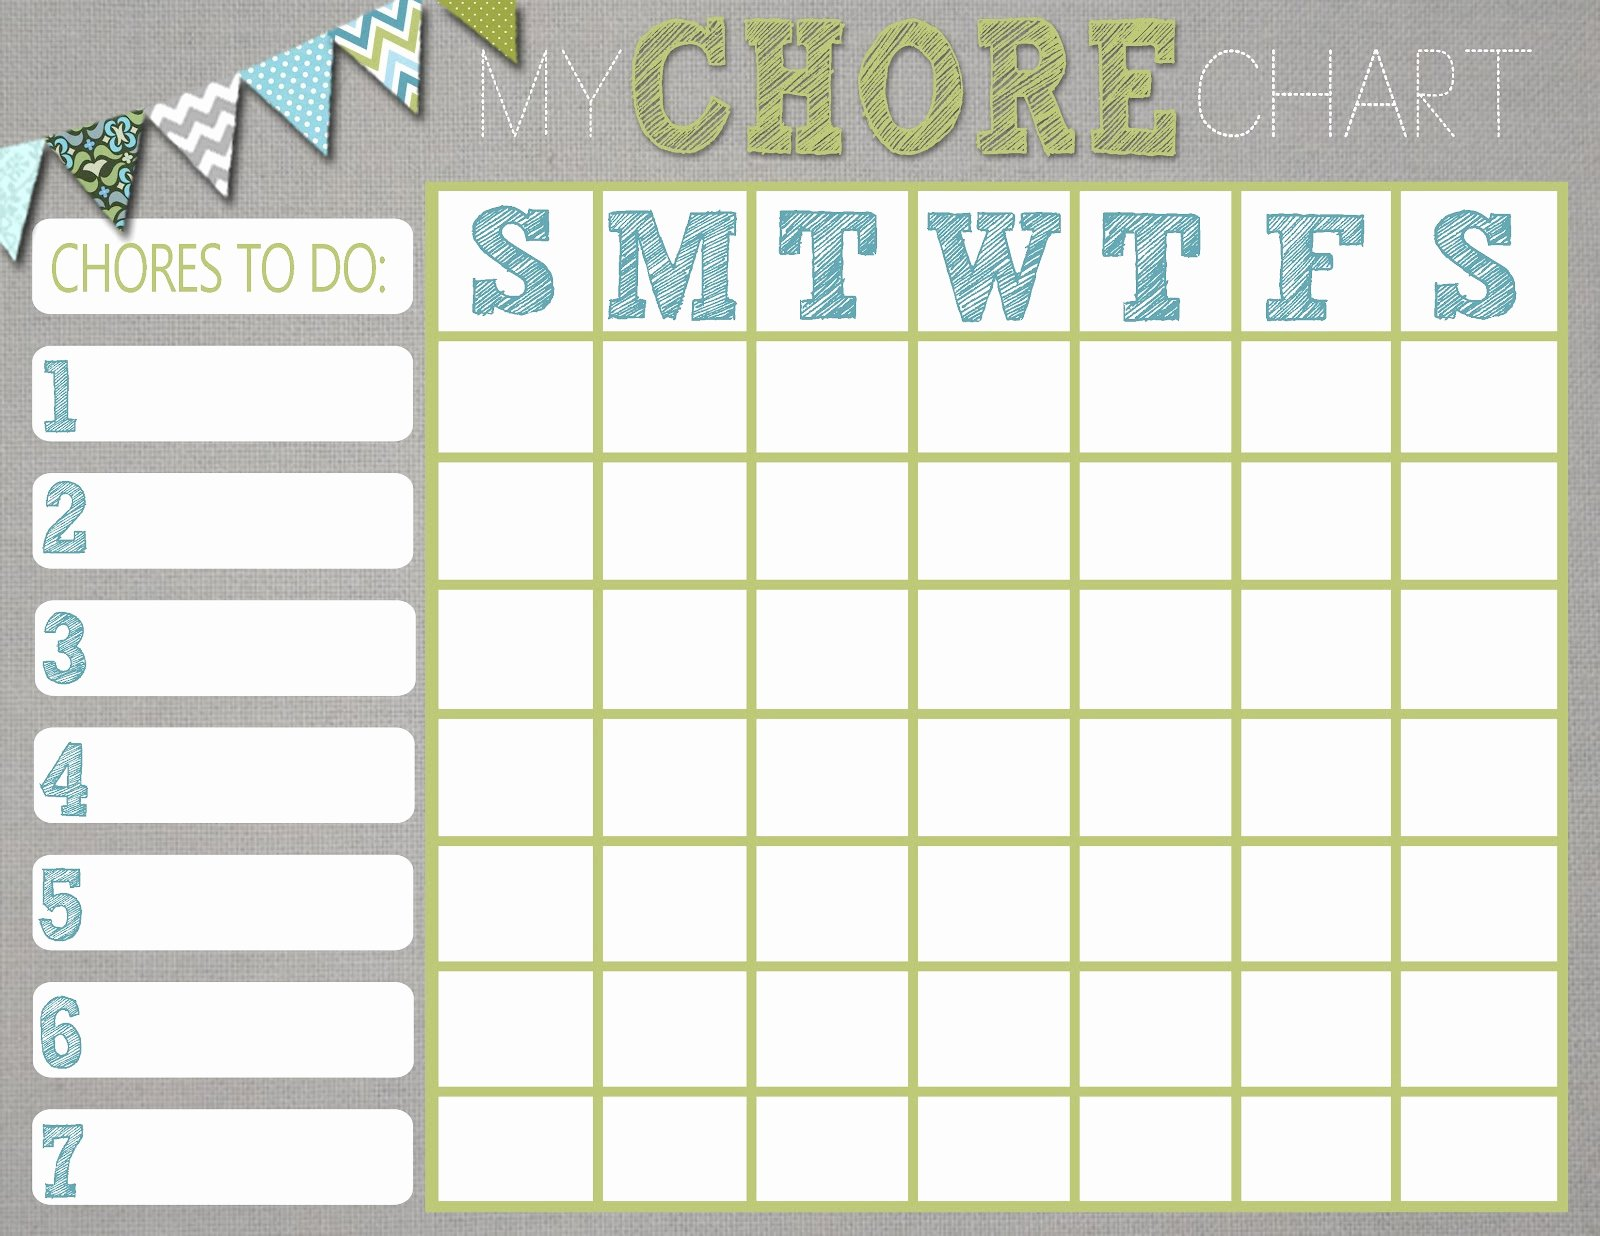 Free Chore Chart Template Best Of Chore Charts